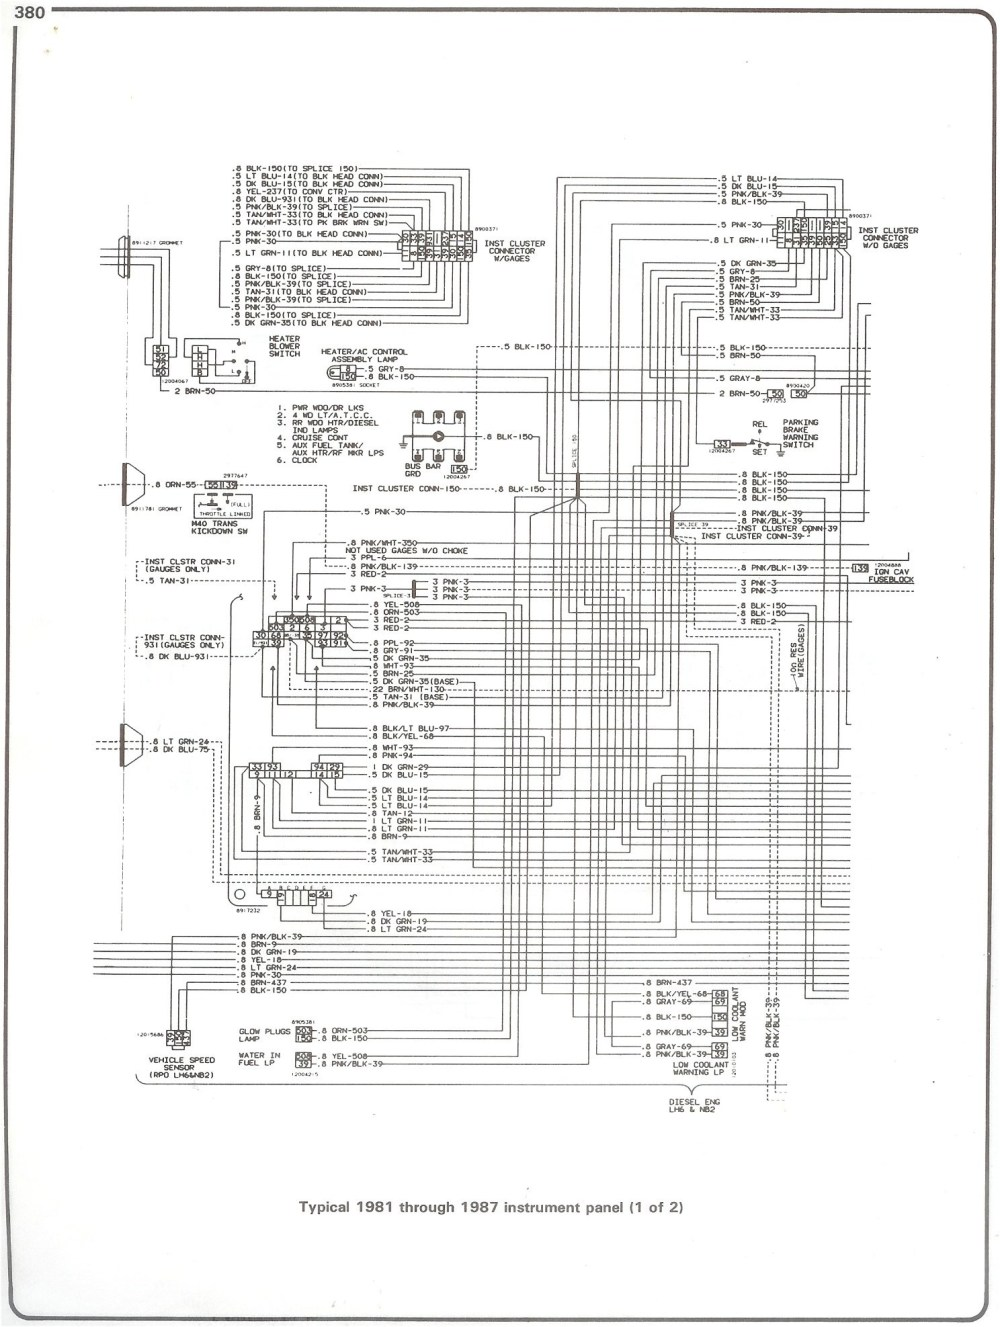 medium resolution of 87 chevy fuse diagram wiring diagrams konsult87 chevy fuse diagram wiring diagram centre 87 chevy fuse